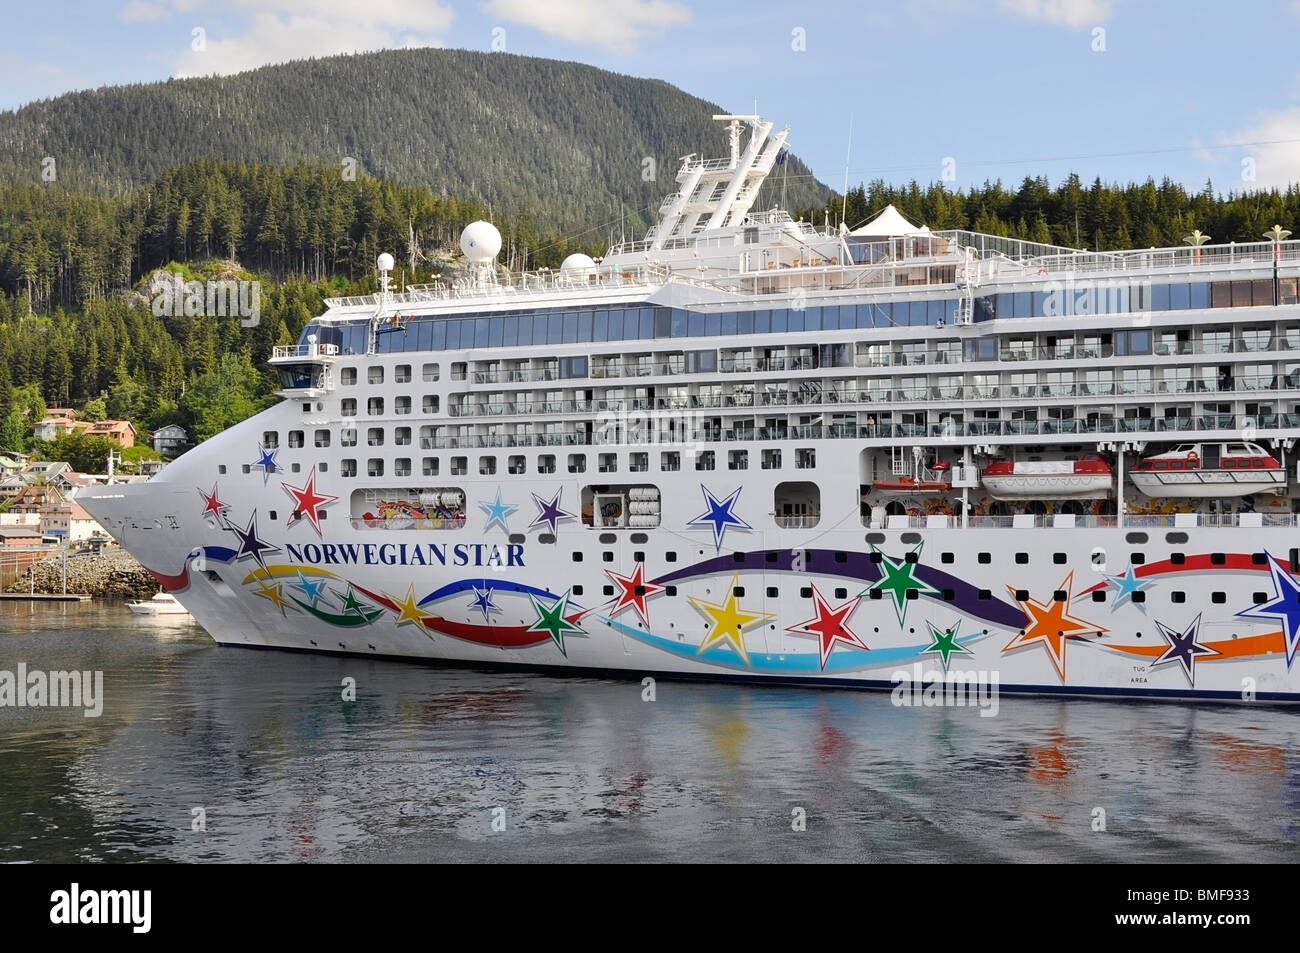 Cruise Ship - Norwegian Star - Stock Image